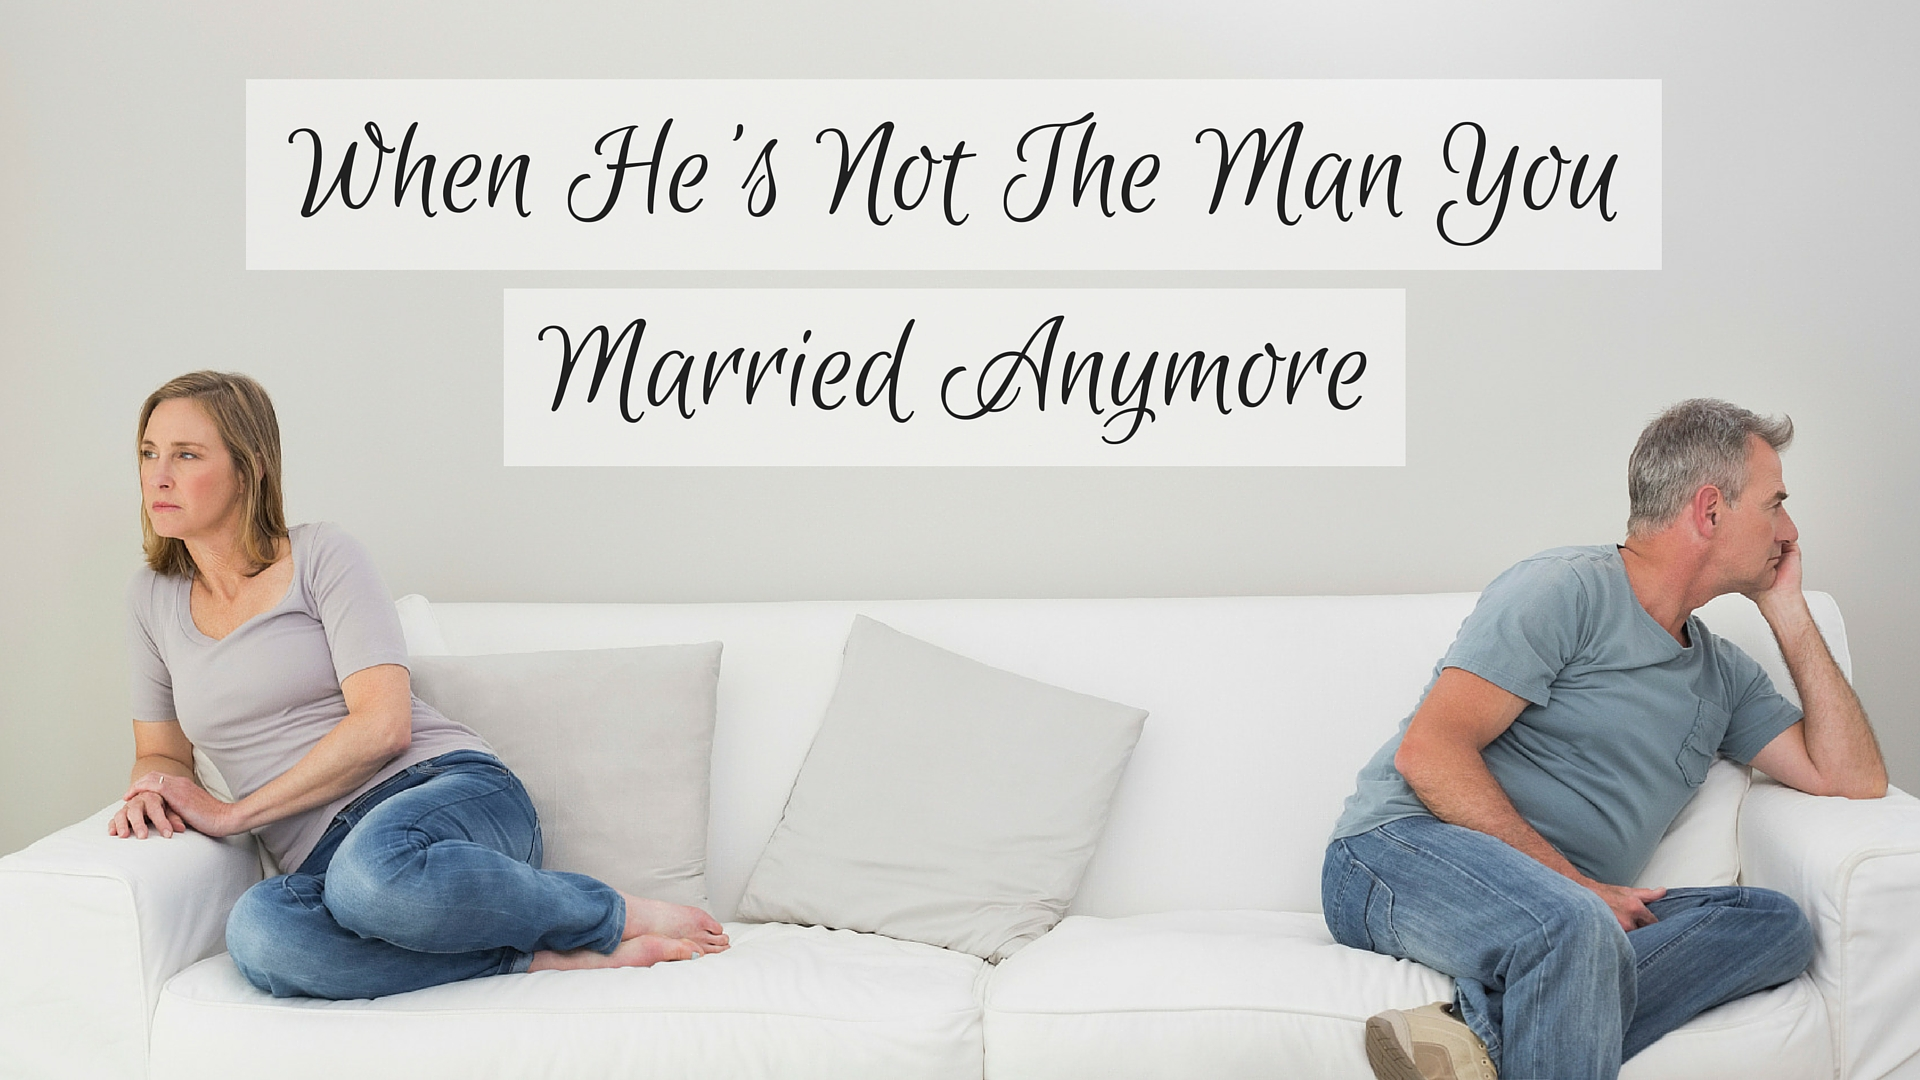 When He Is Not The Man You Married Anymore